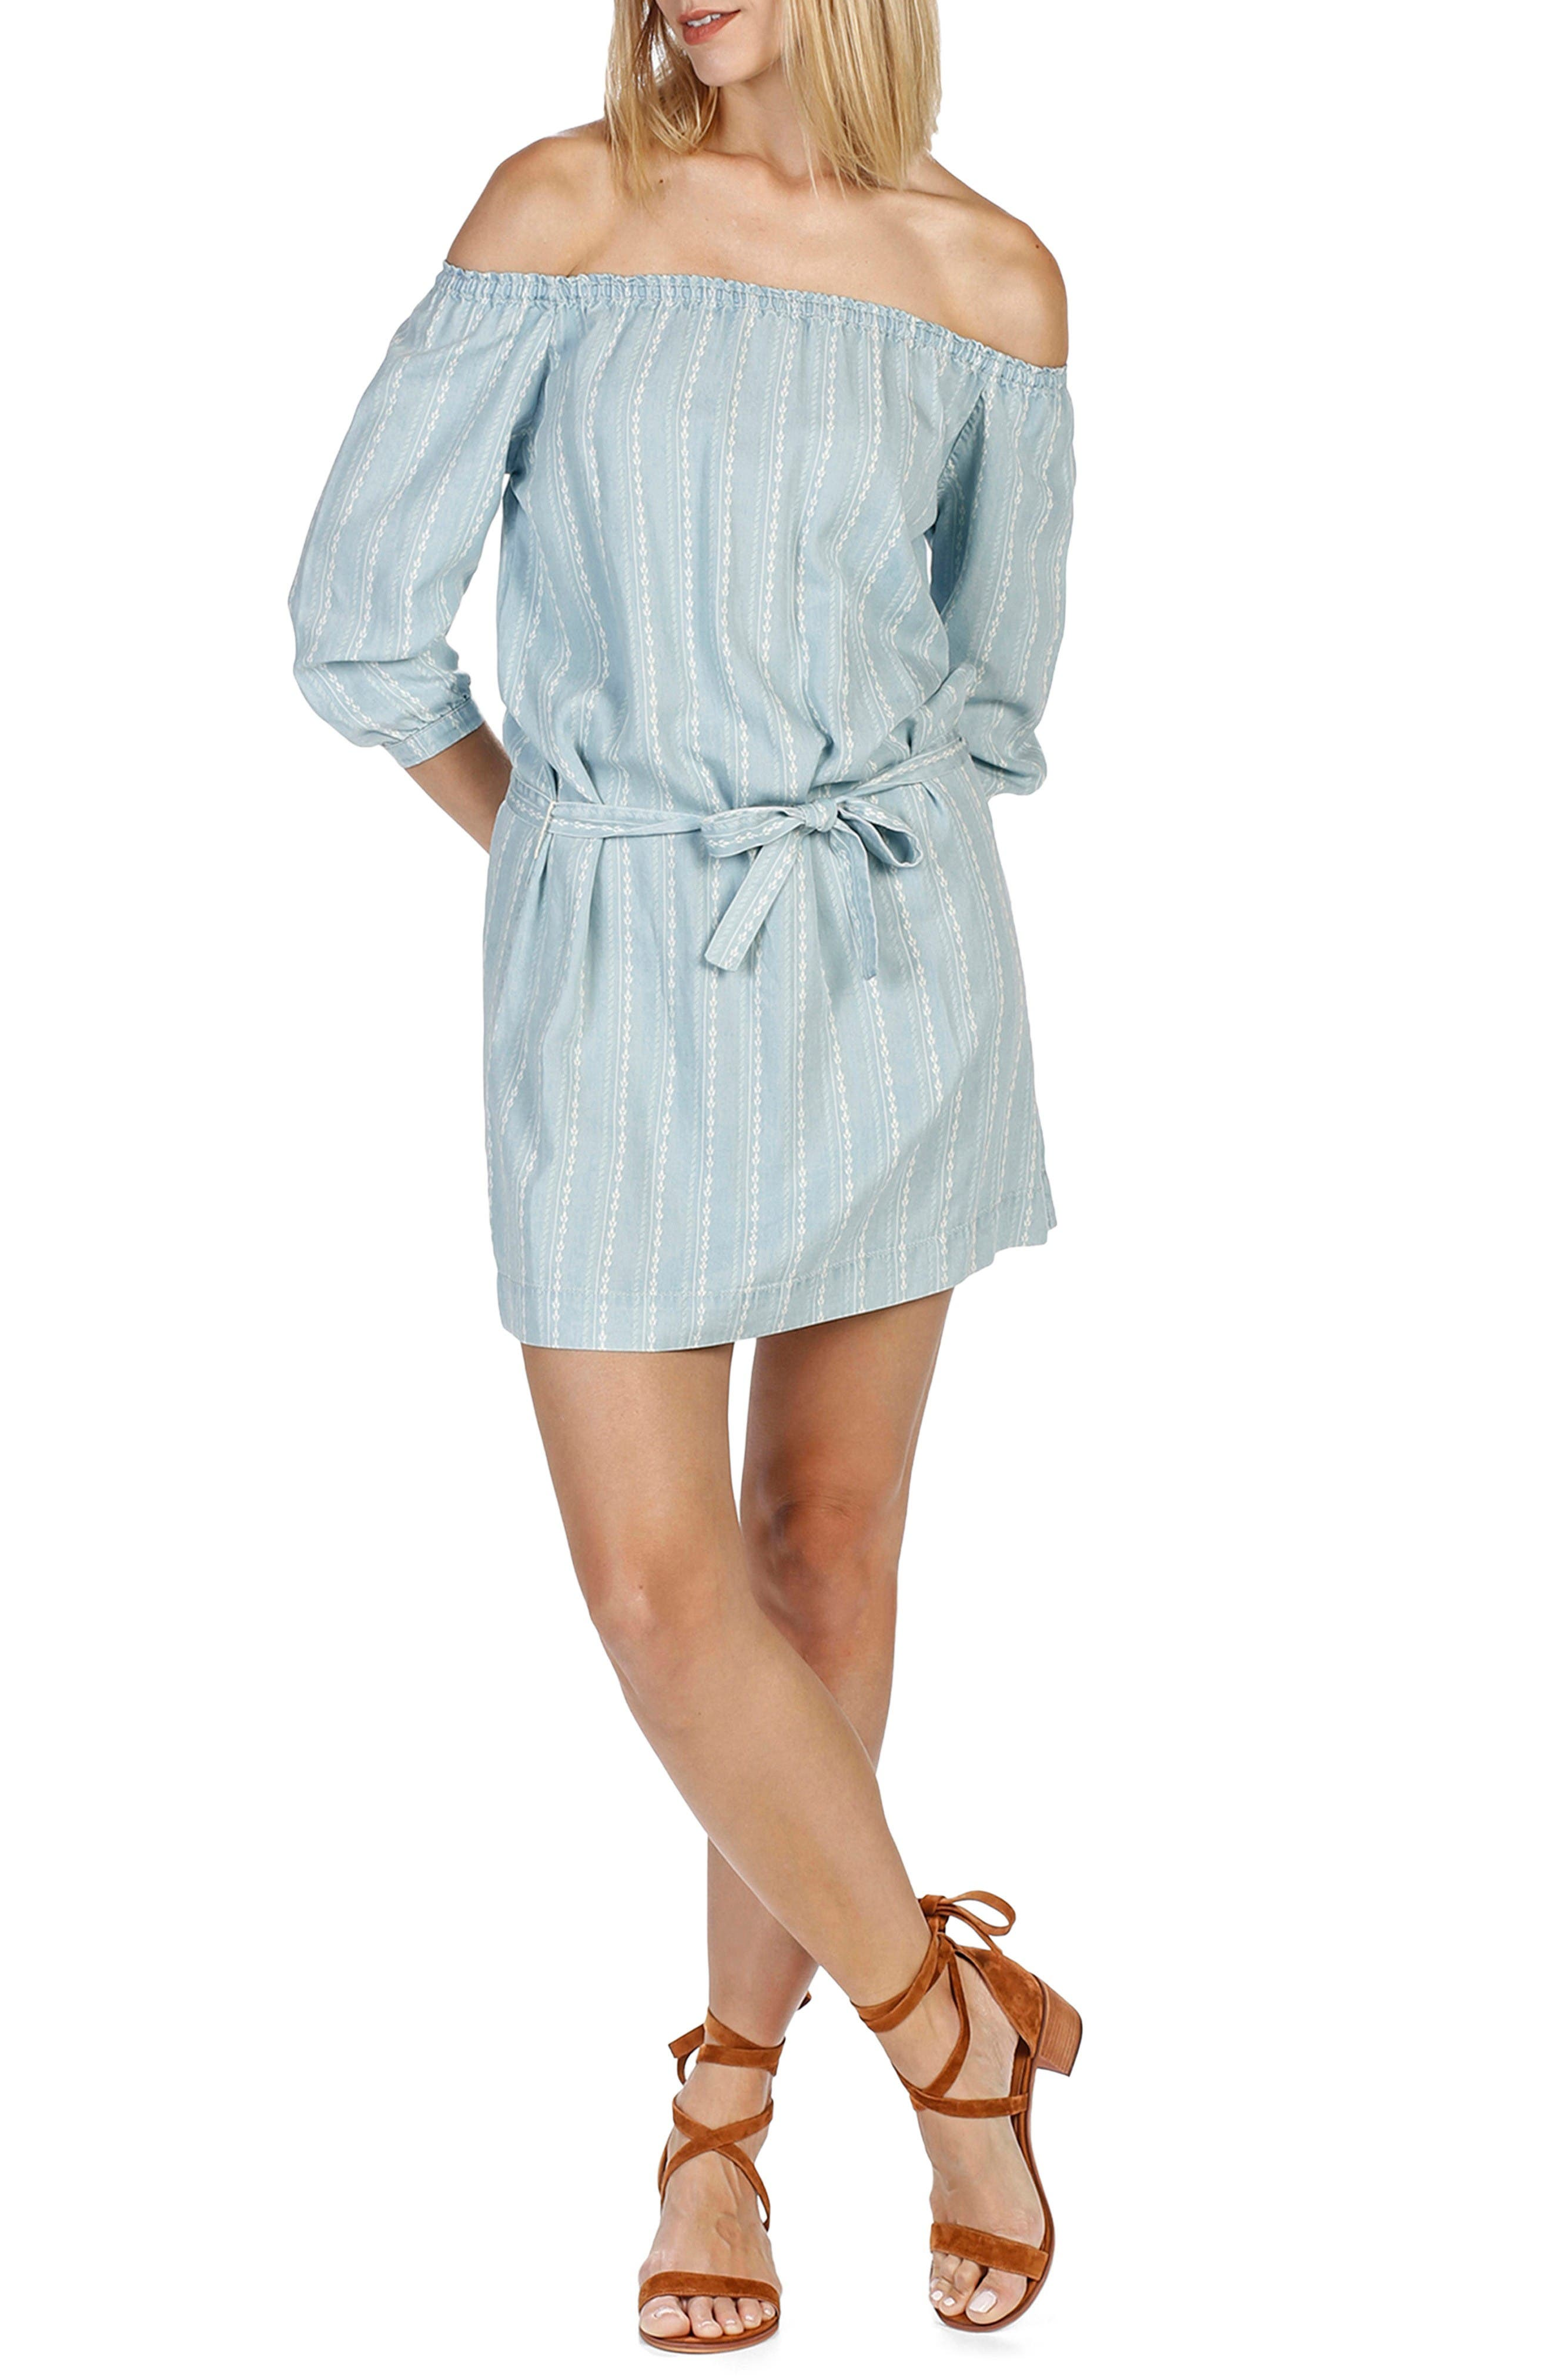 PAIGE Beatrice Chambray Off the Shoulder Dress